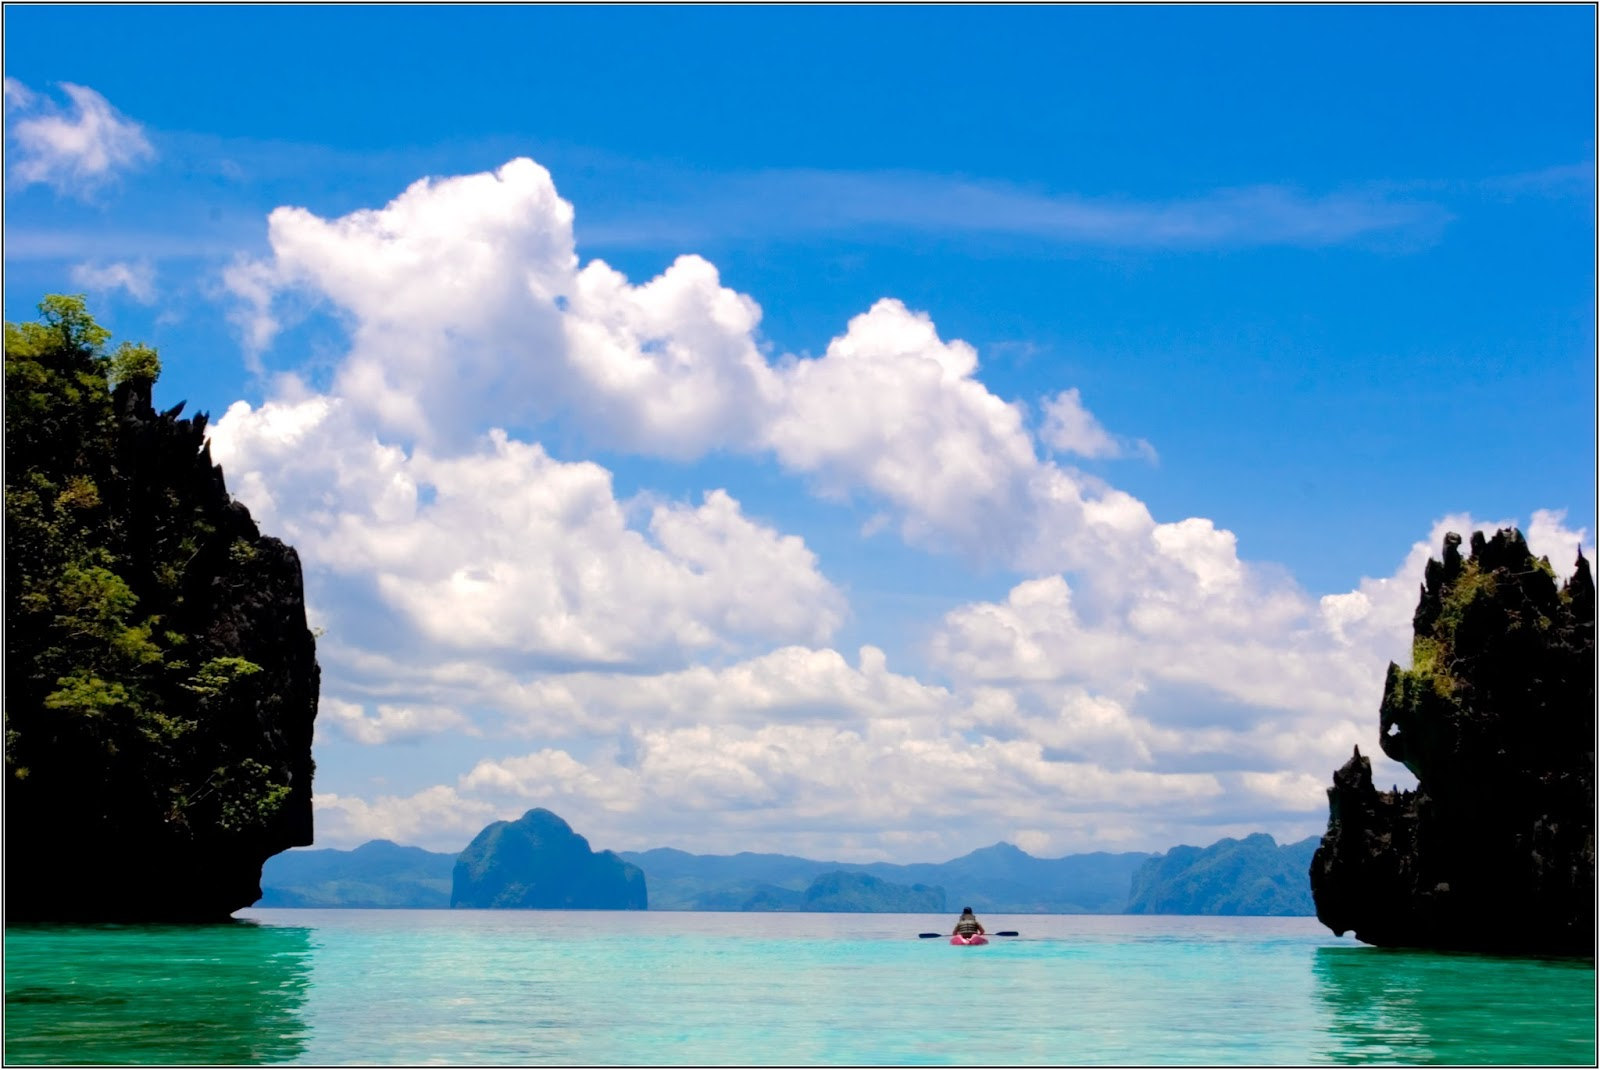 jasooralmadinah travels&tours: beautiful scenery in the philippines